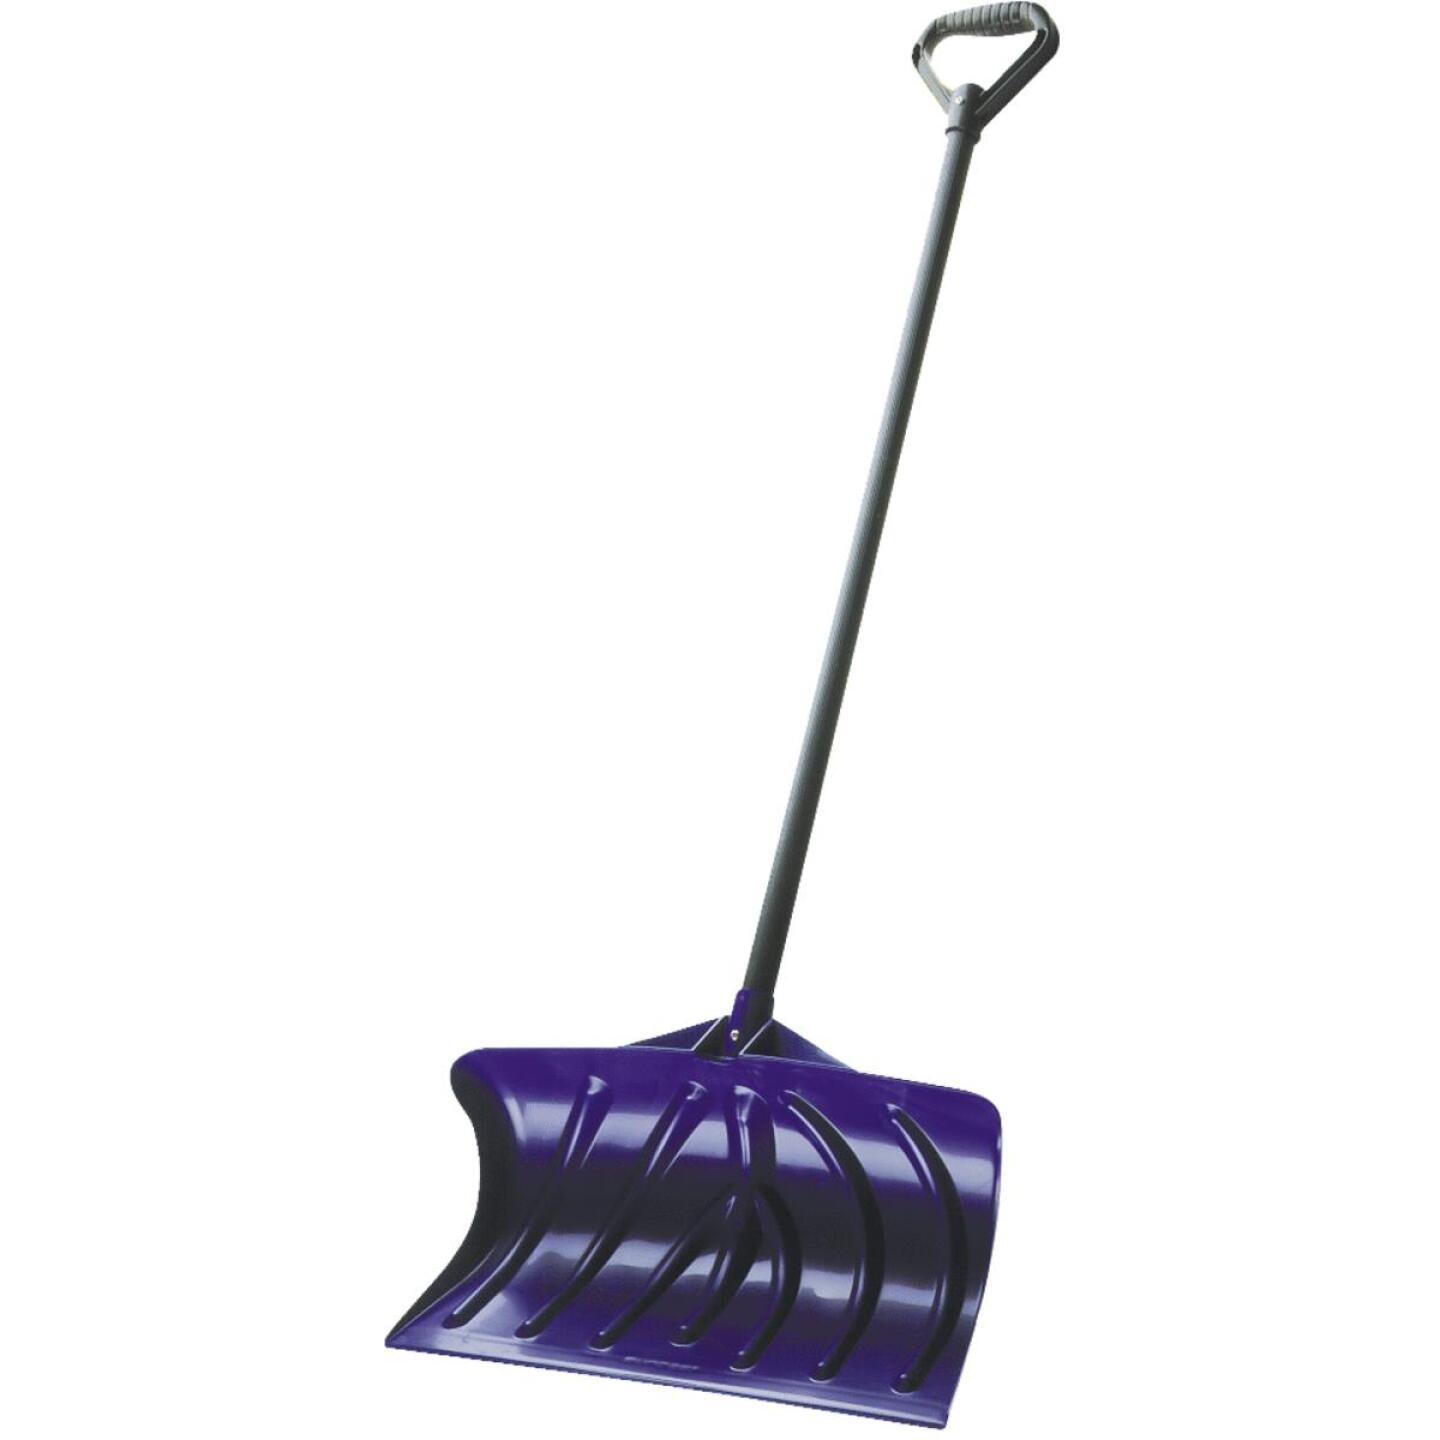 Suncast 20 In. Poly Snow Pusher with 37 In. Steel Handle Image 1